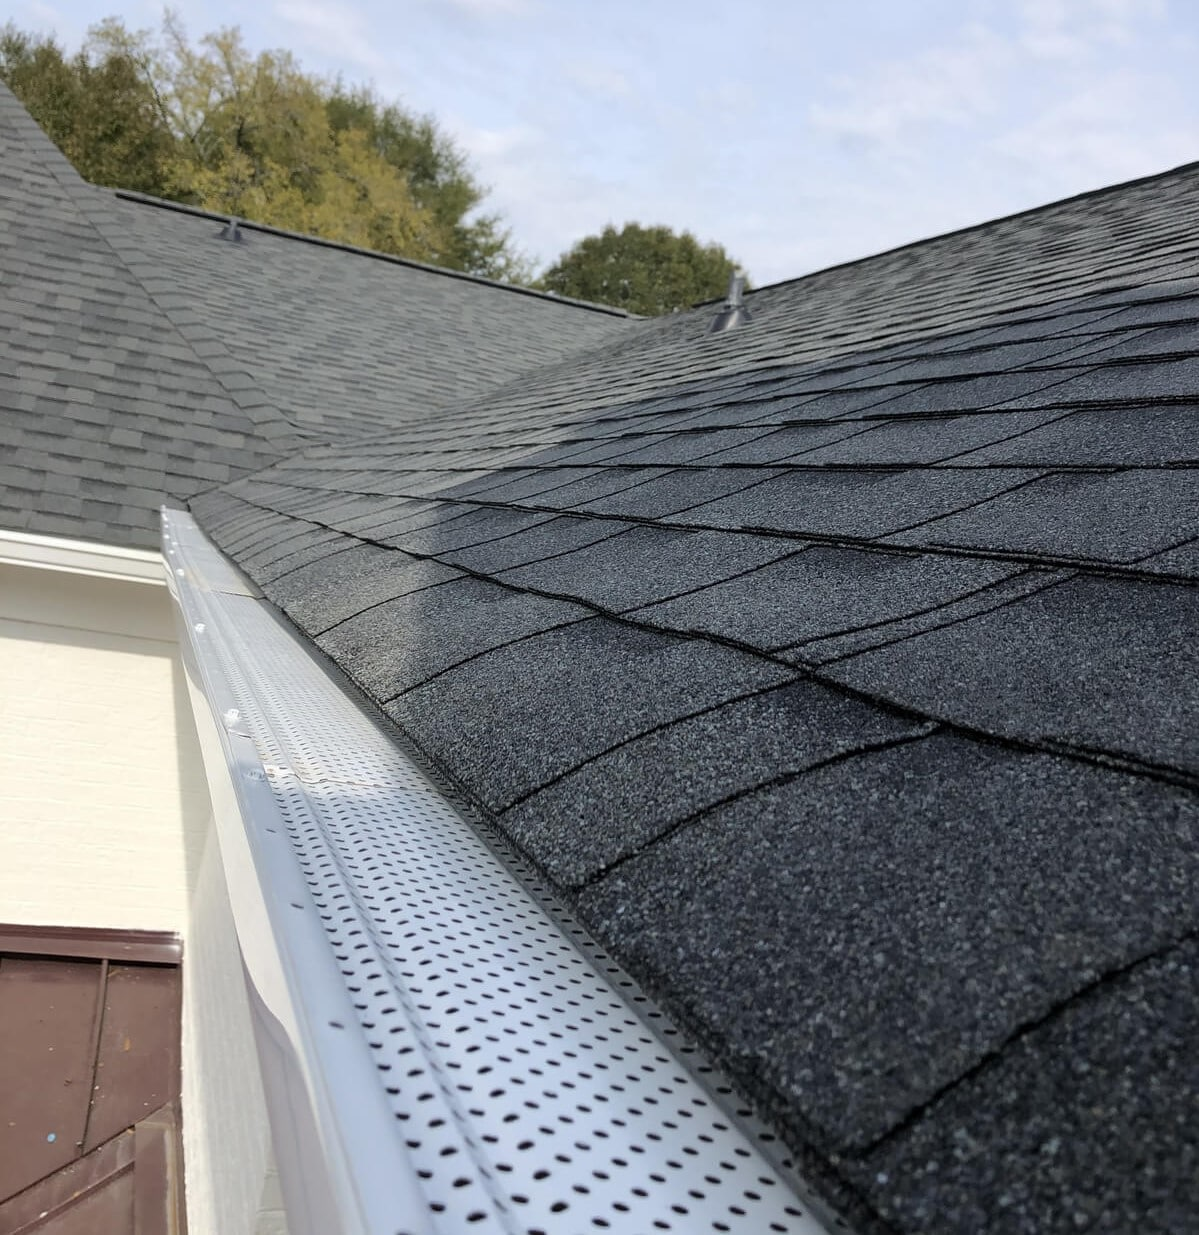 gutter drainage solutions